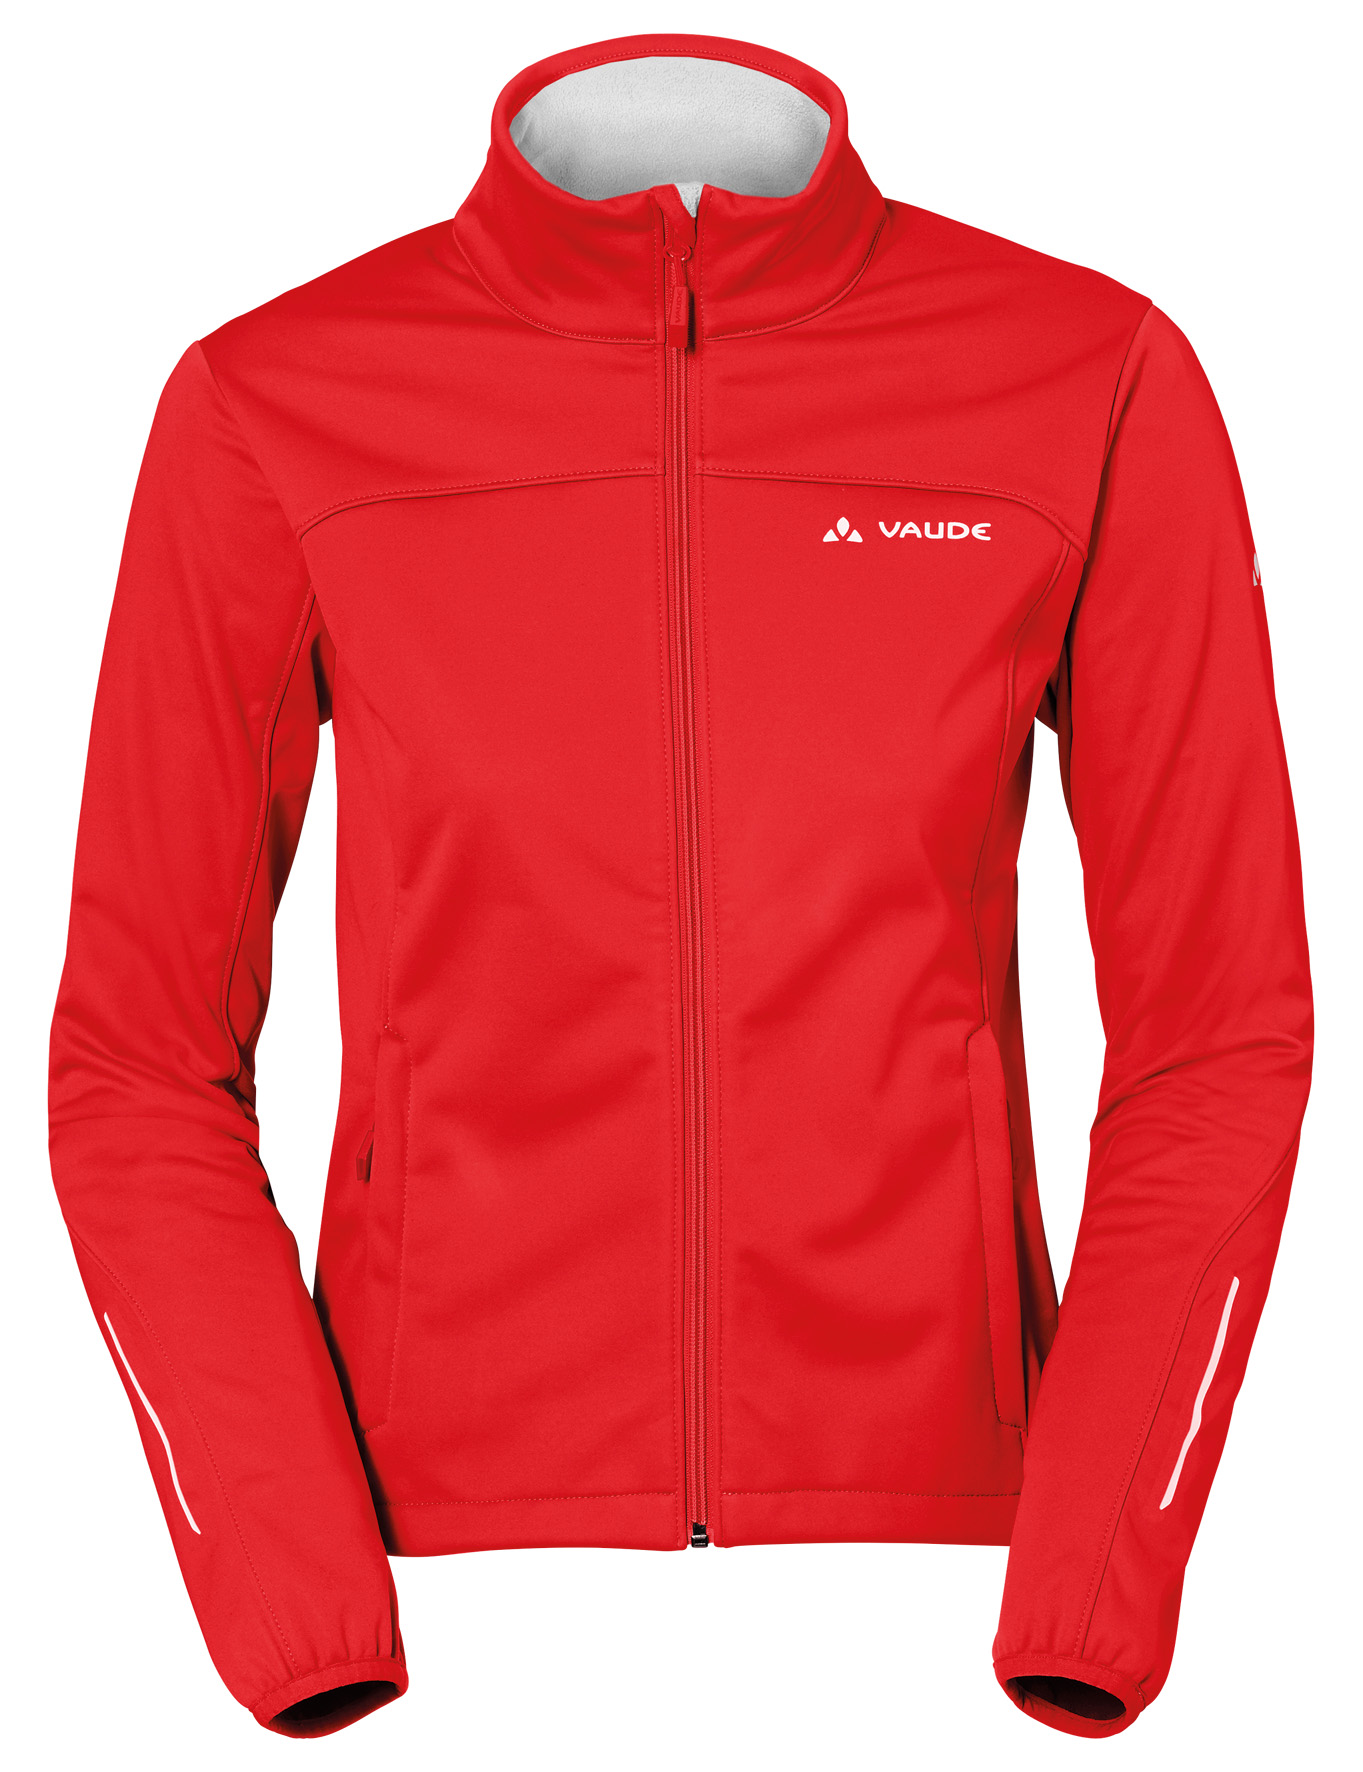 VAUDE Women´s Wintry Jacket III flame Größe 40 - schneider-sports